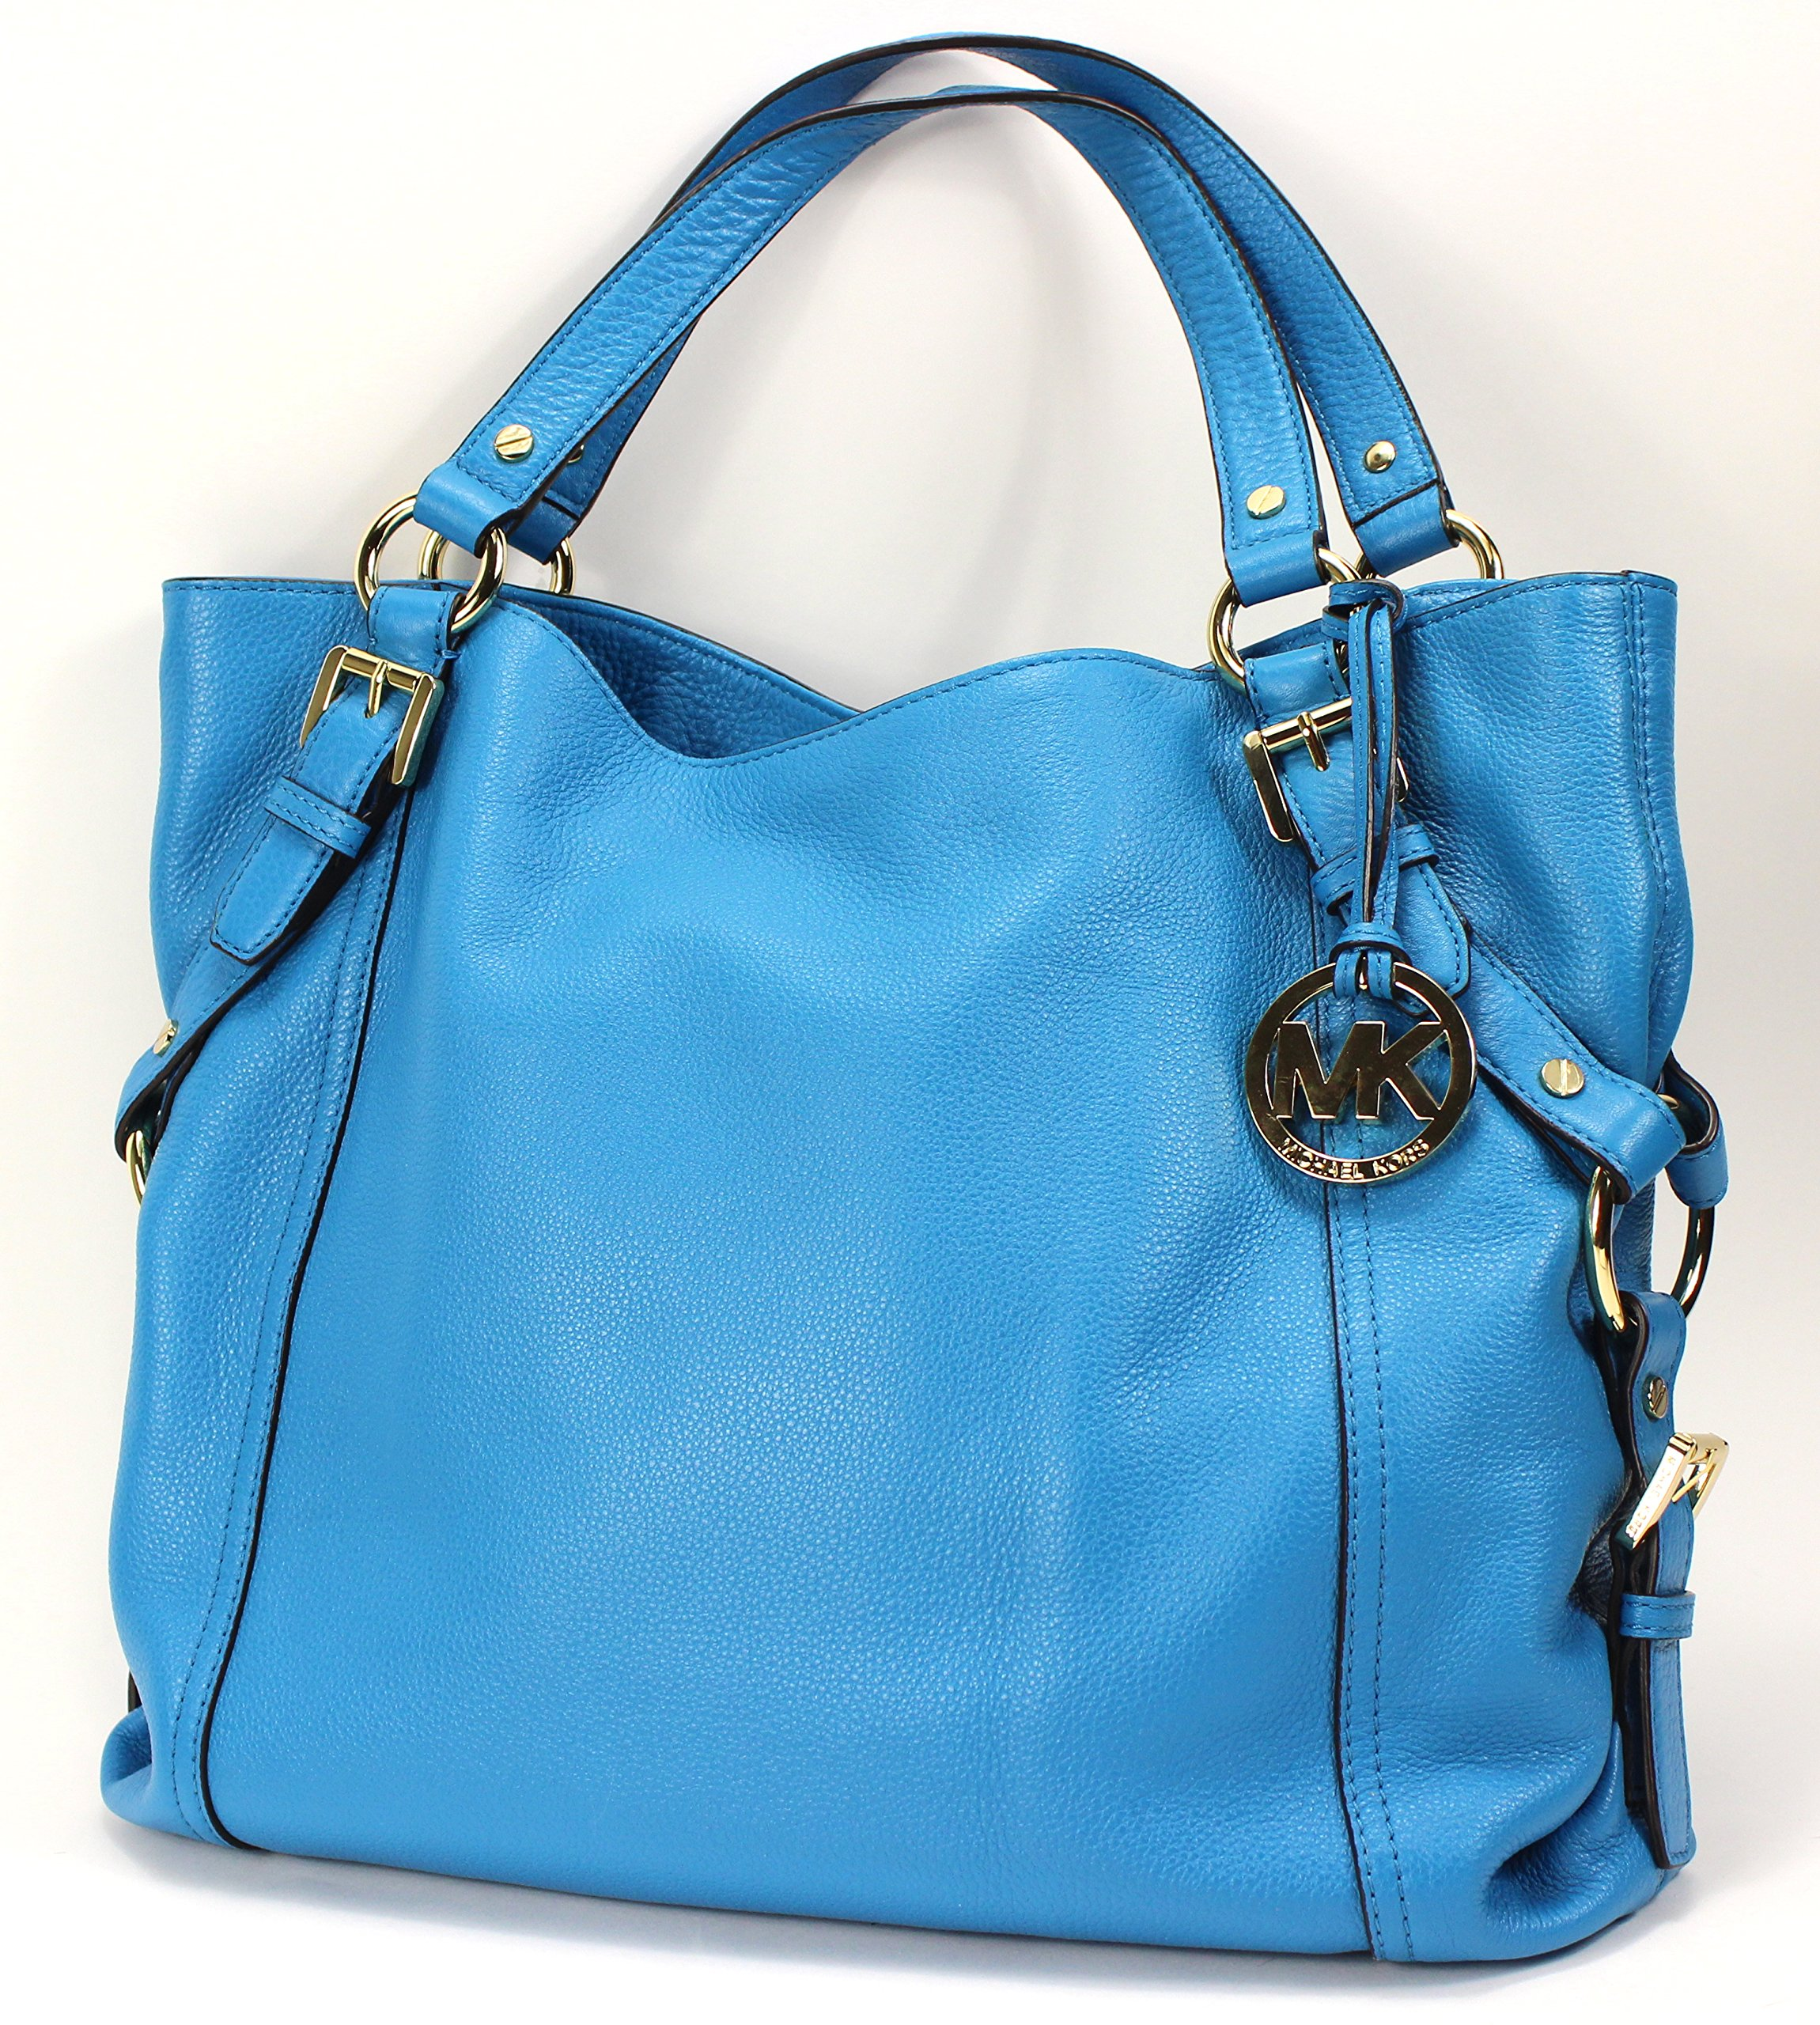 Michael Kors Tristan Large Shoulder Tote in Summer Blue